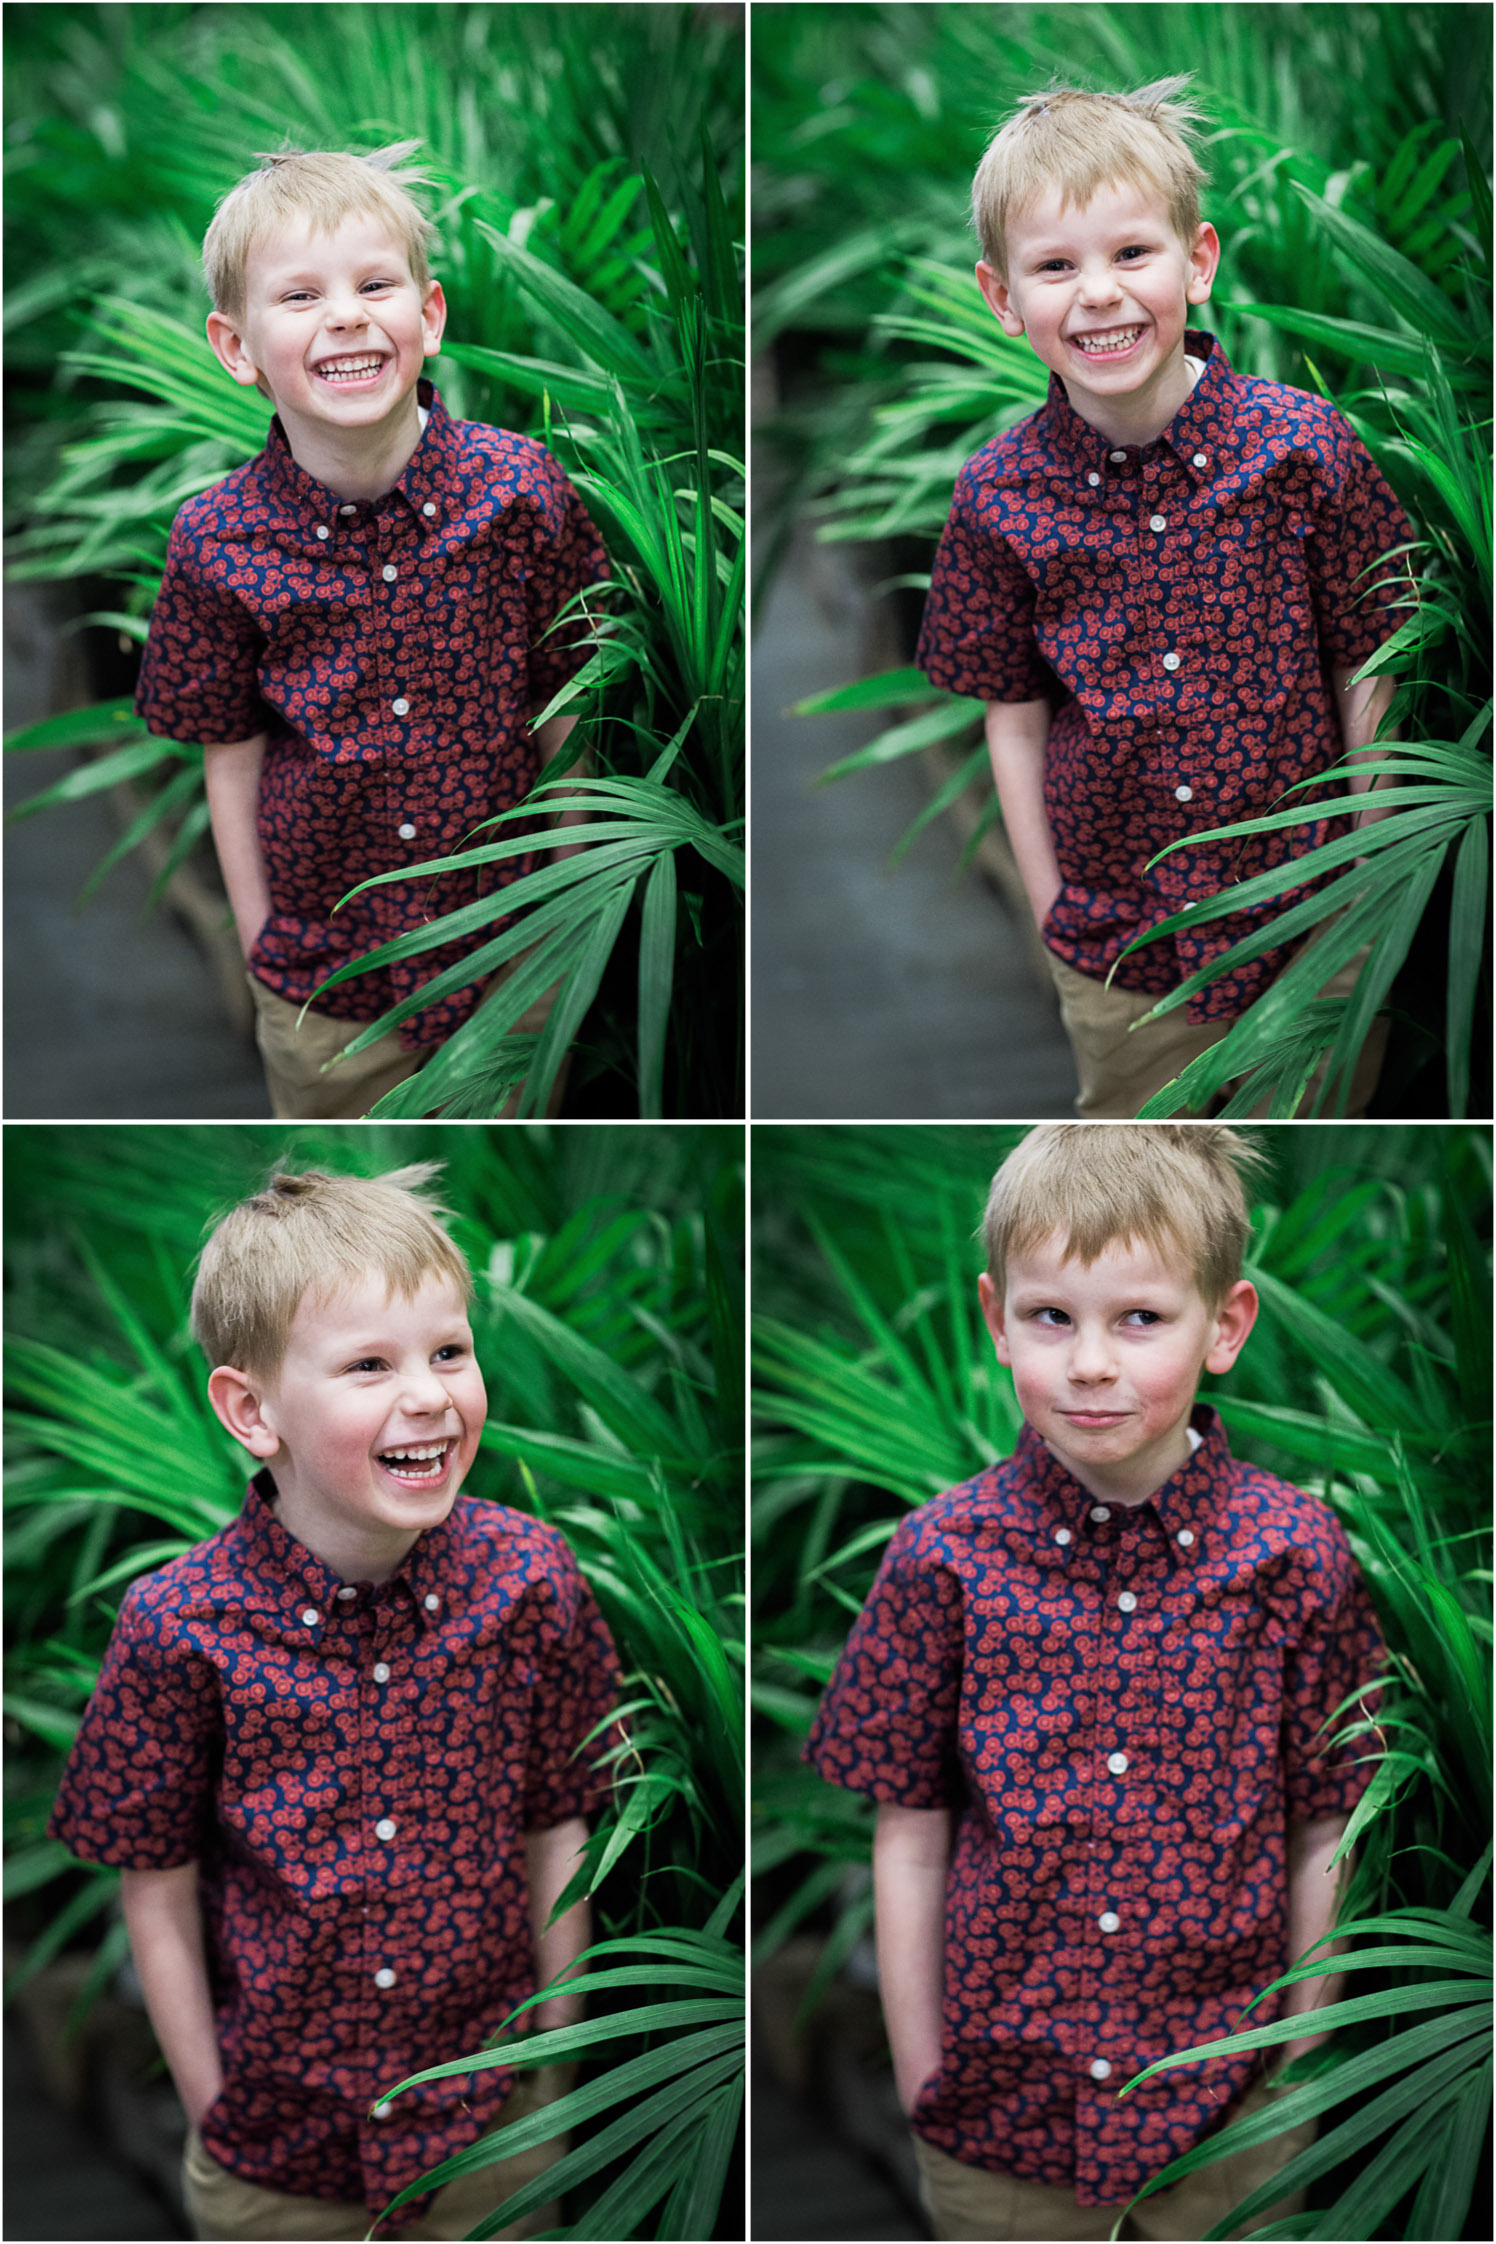 02-beautiful-photos-in-ugly-places-greenery-home-depot-photo-session-mahoenen-photography.jpg